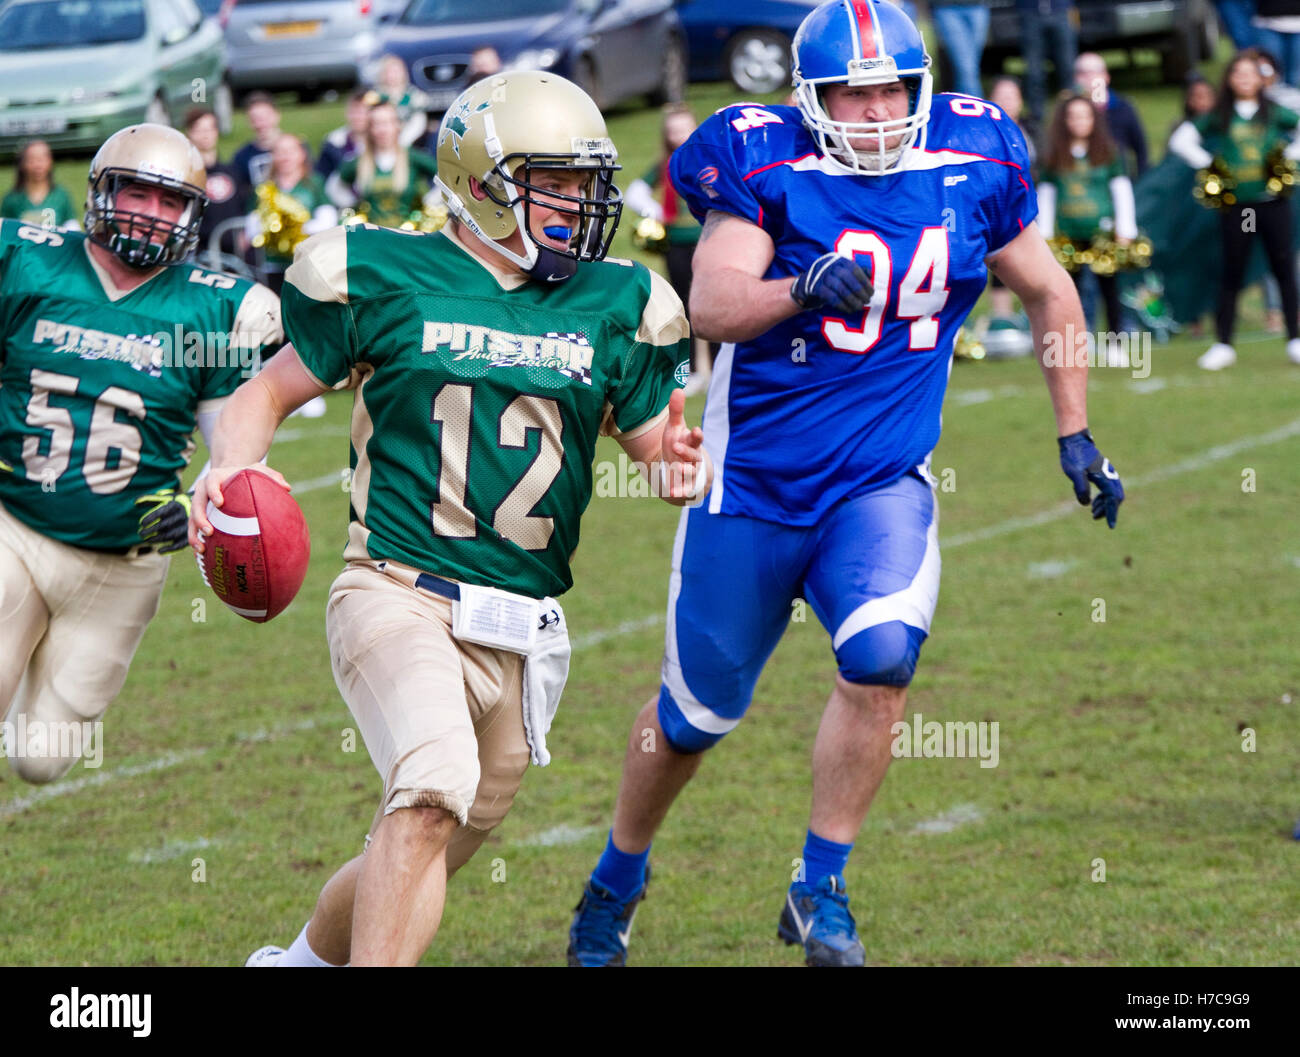 Quarterback with the ball pursued by large opponent - Stock Image